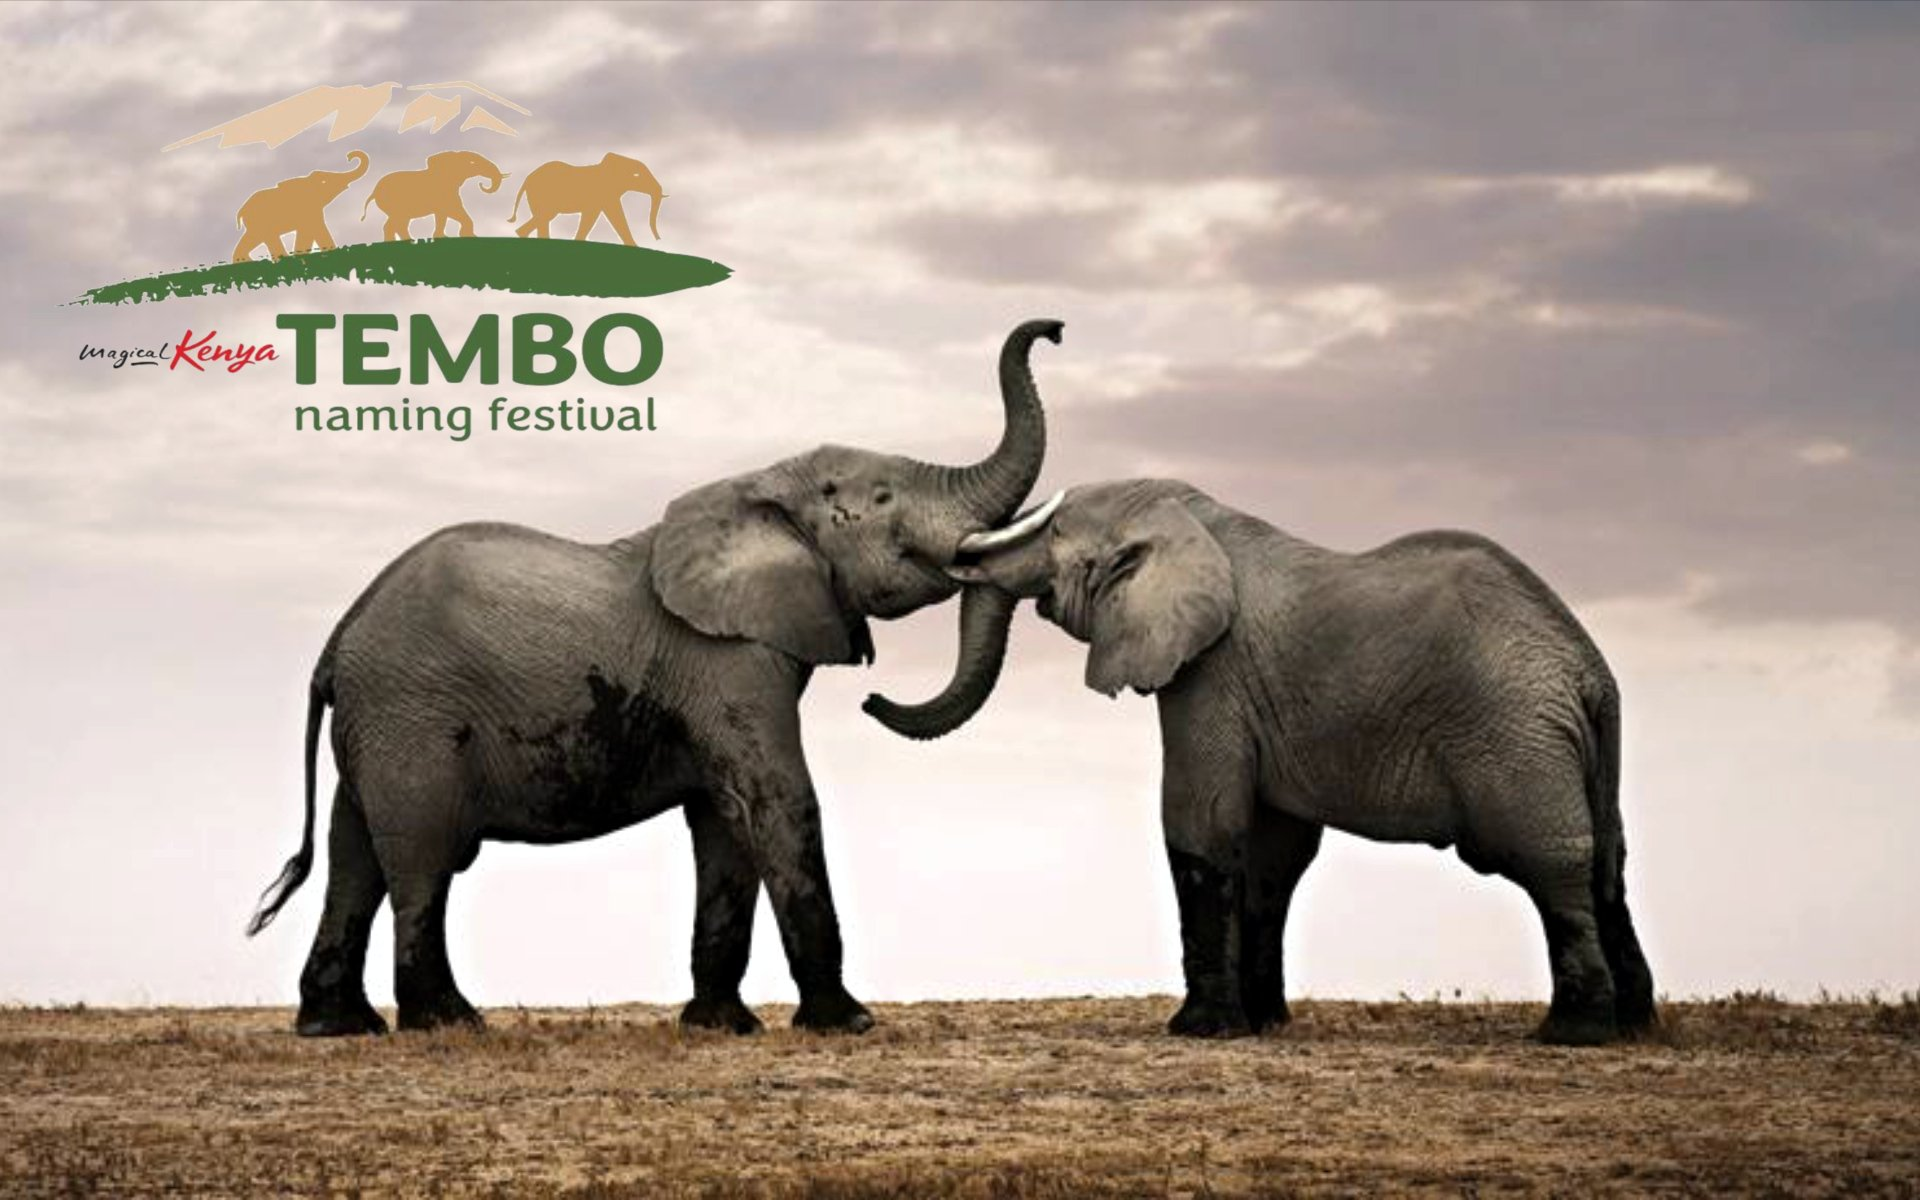 Feel like giving a Tembo your name? You have three categories from which to choose an elephant for the October 9 Naming Festival at Amboseli.